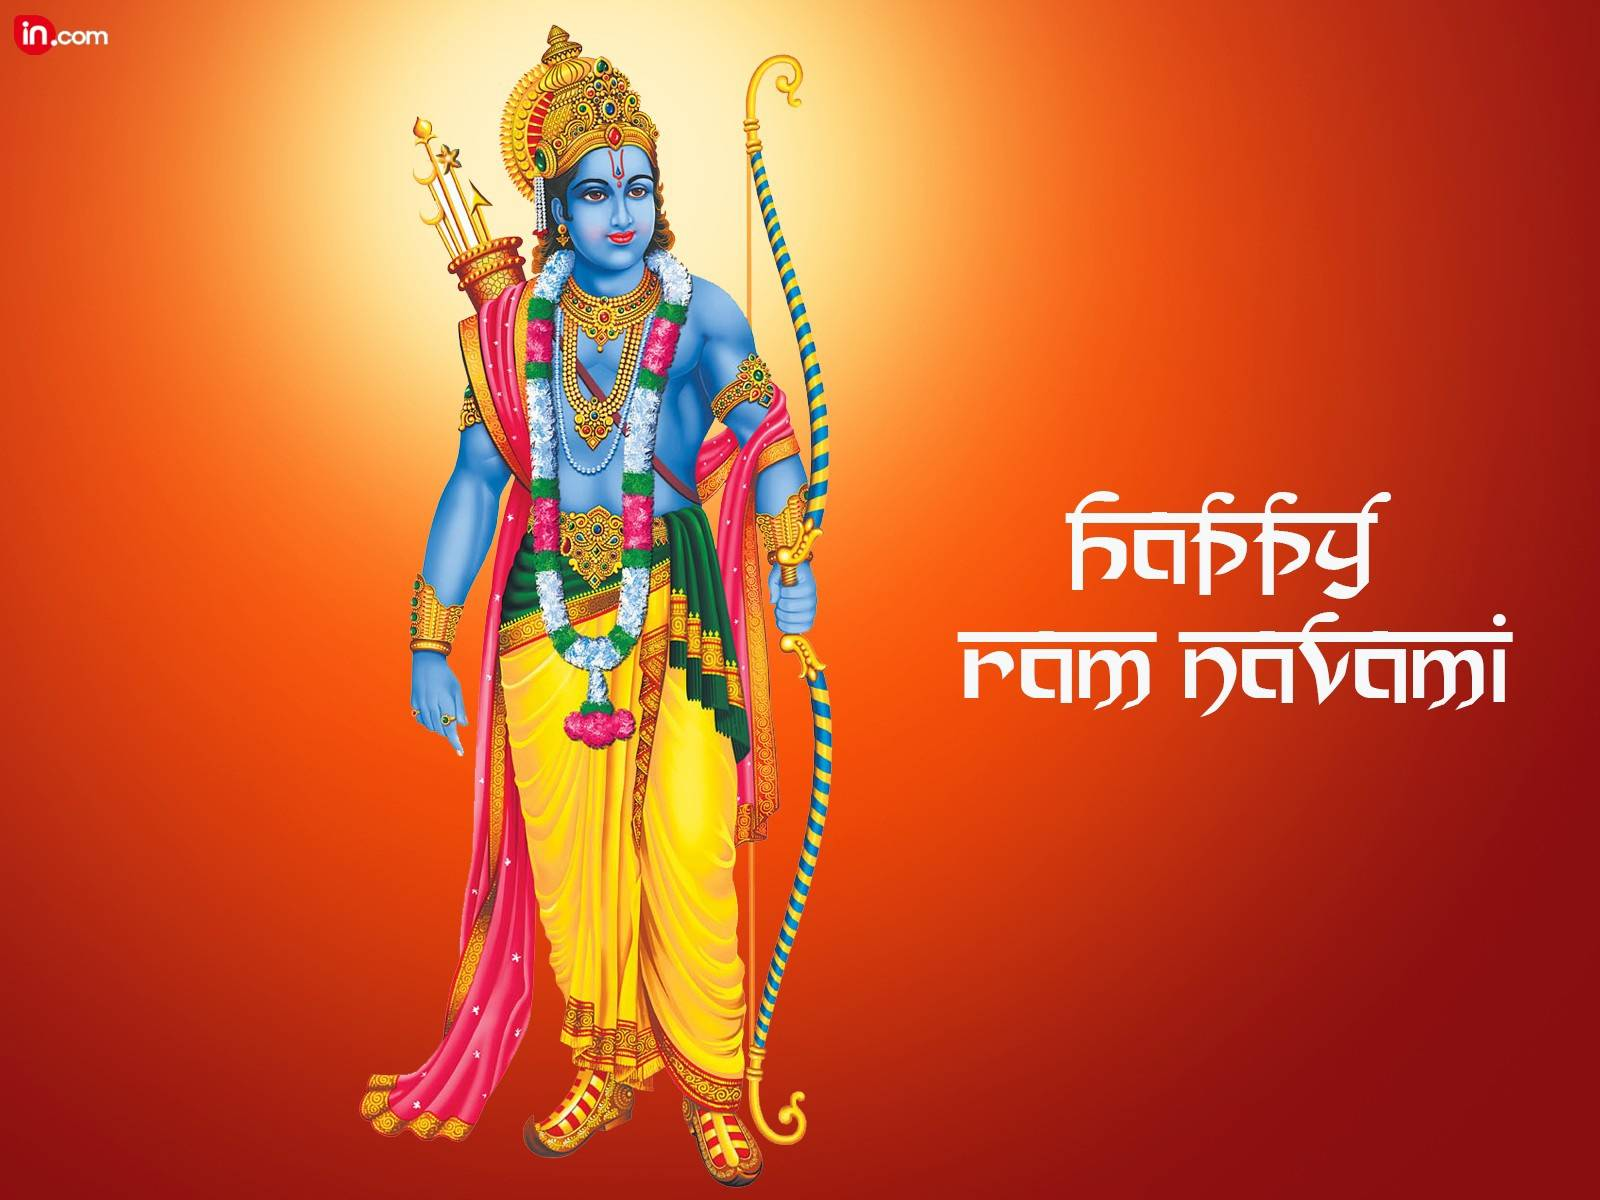 Sms Message Quotes Image HD Wallpaper: Ram Navami Sms